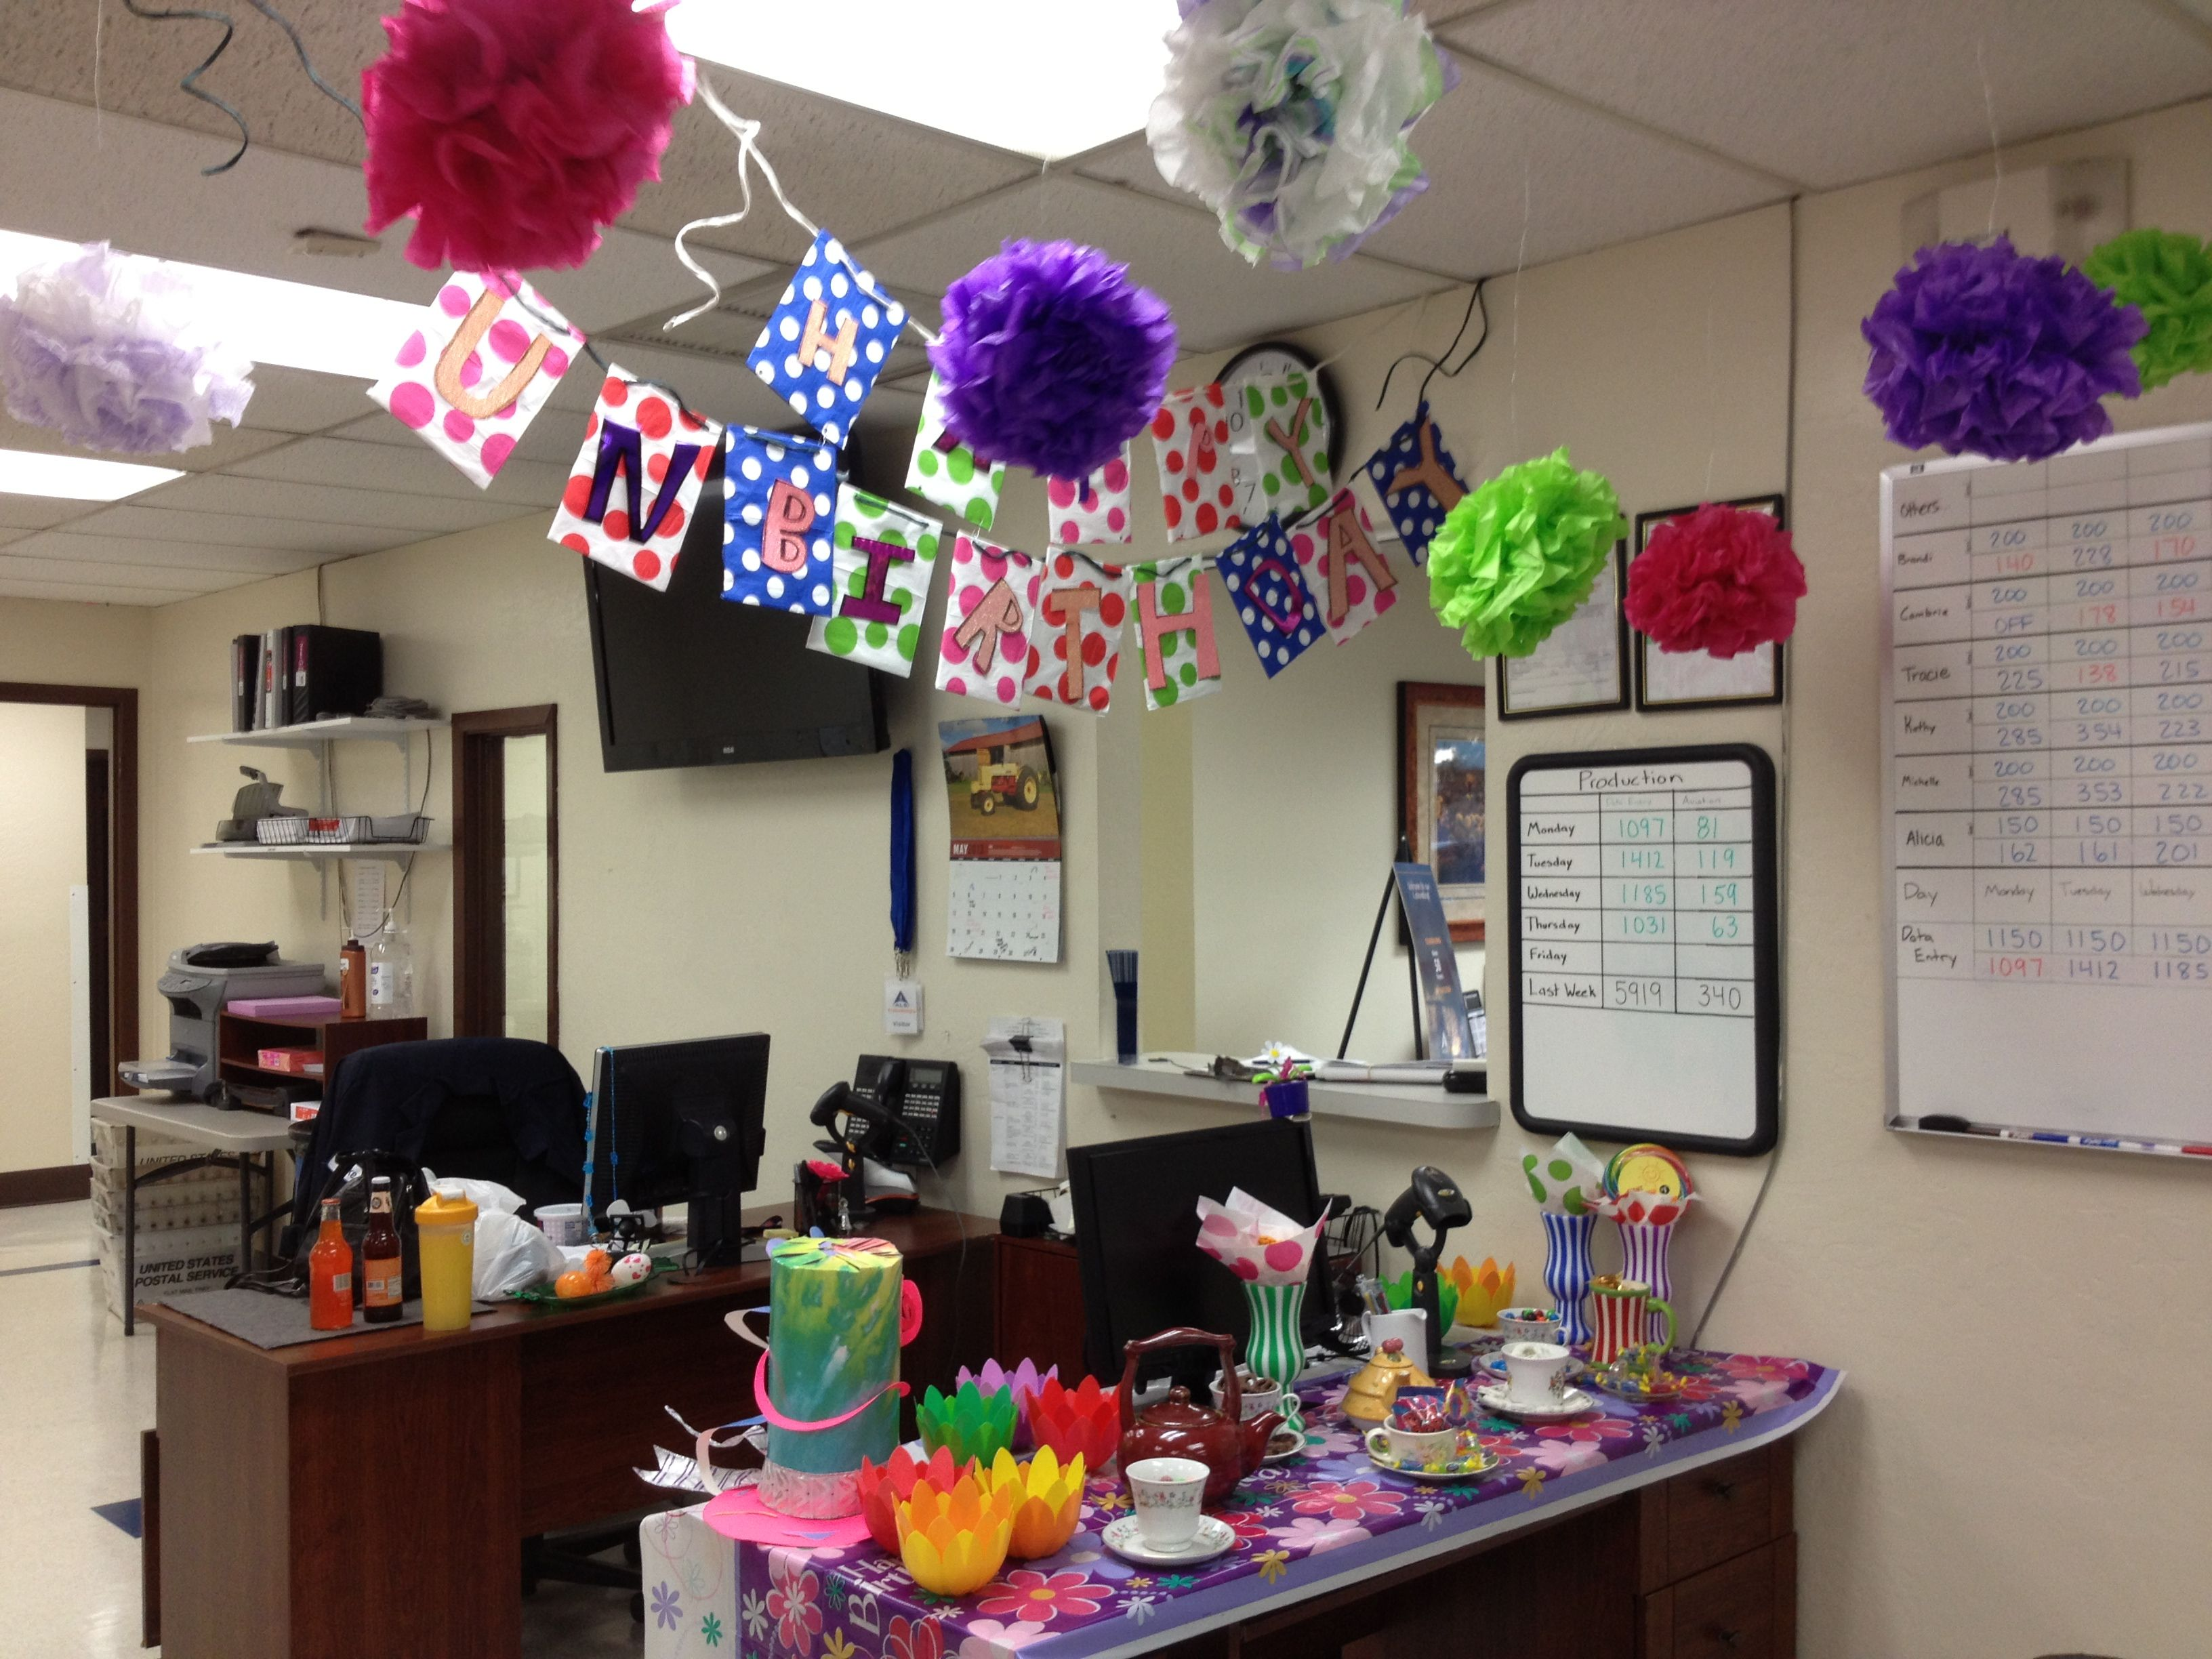 Pin By Kathy Evey On Office Birthday Decorations Office Birthday Office Birthday Decorations Cubicle Birthday Decorations